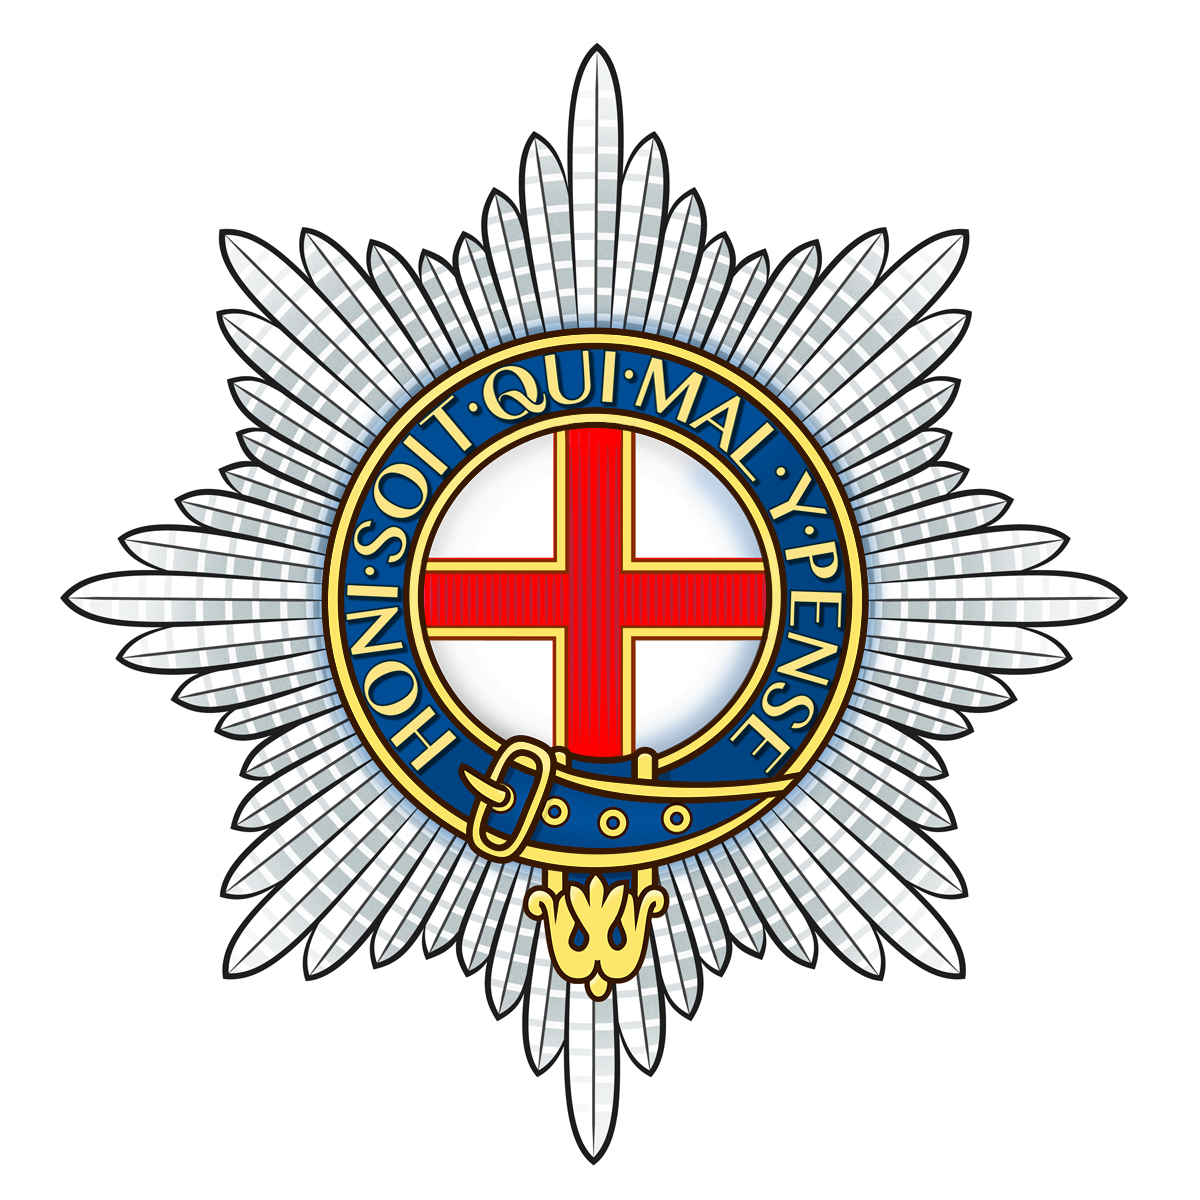 Coldstream Guards - Wikipedia